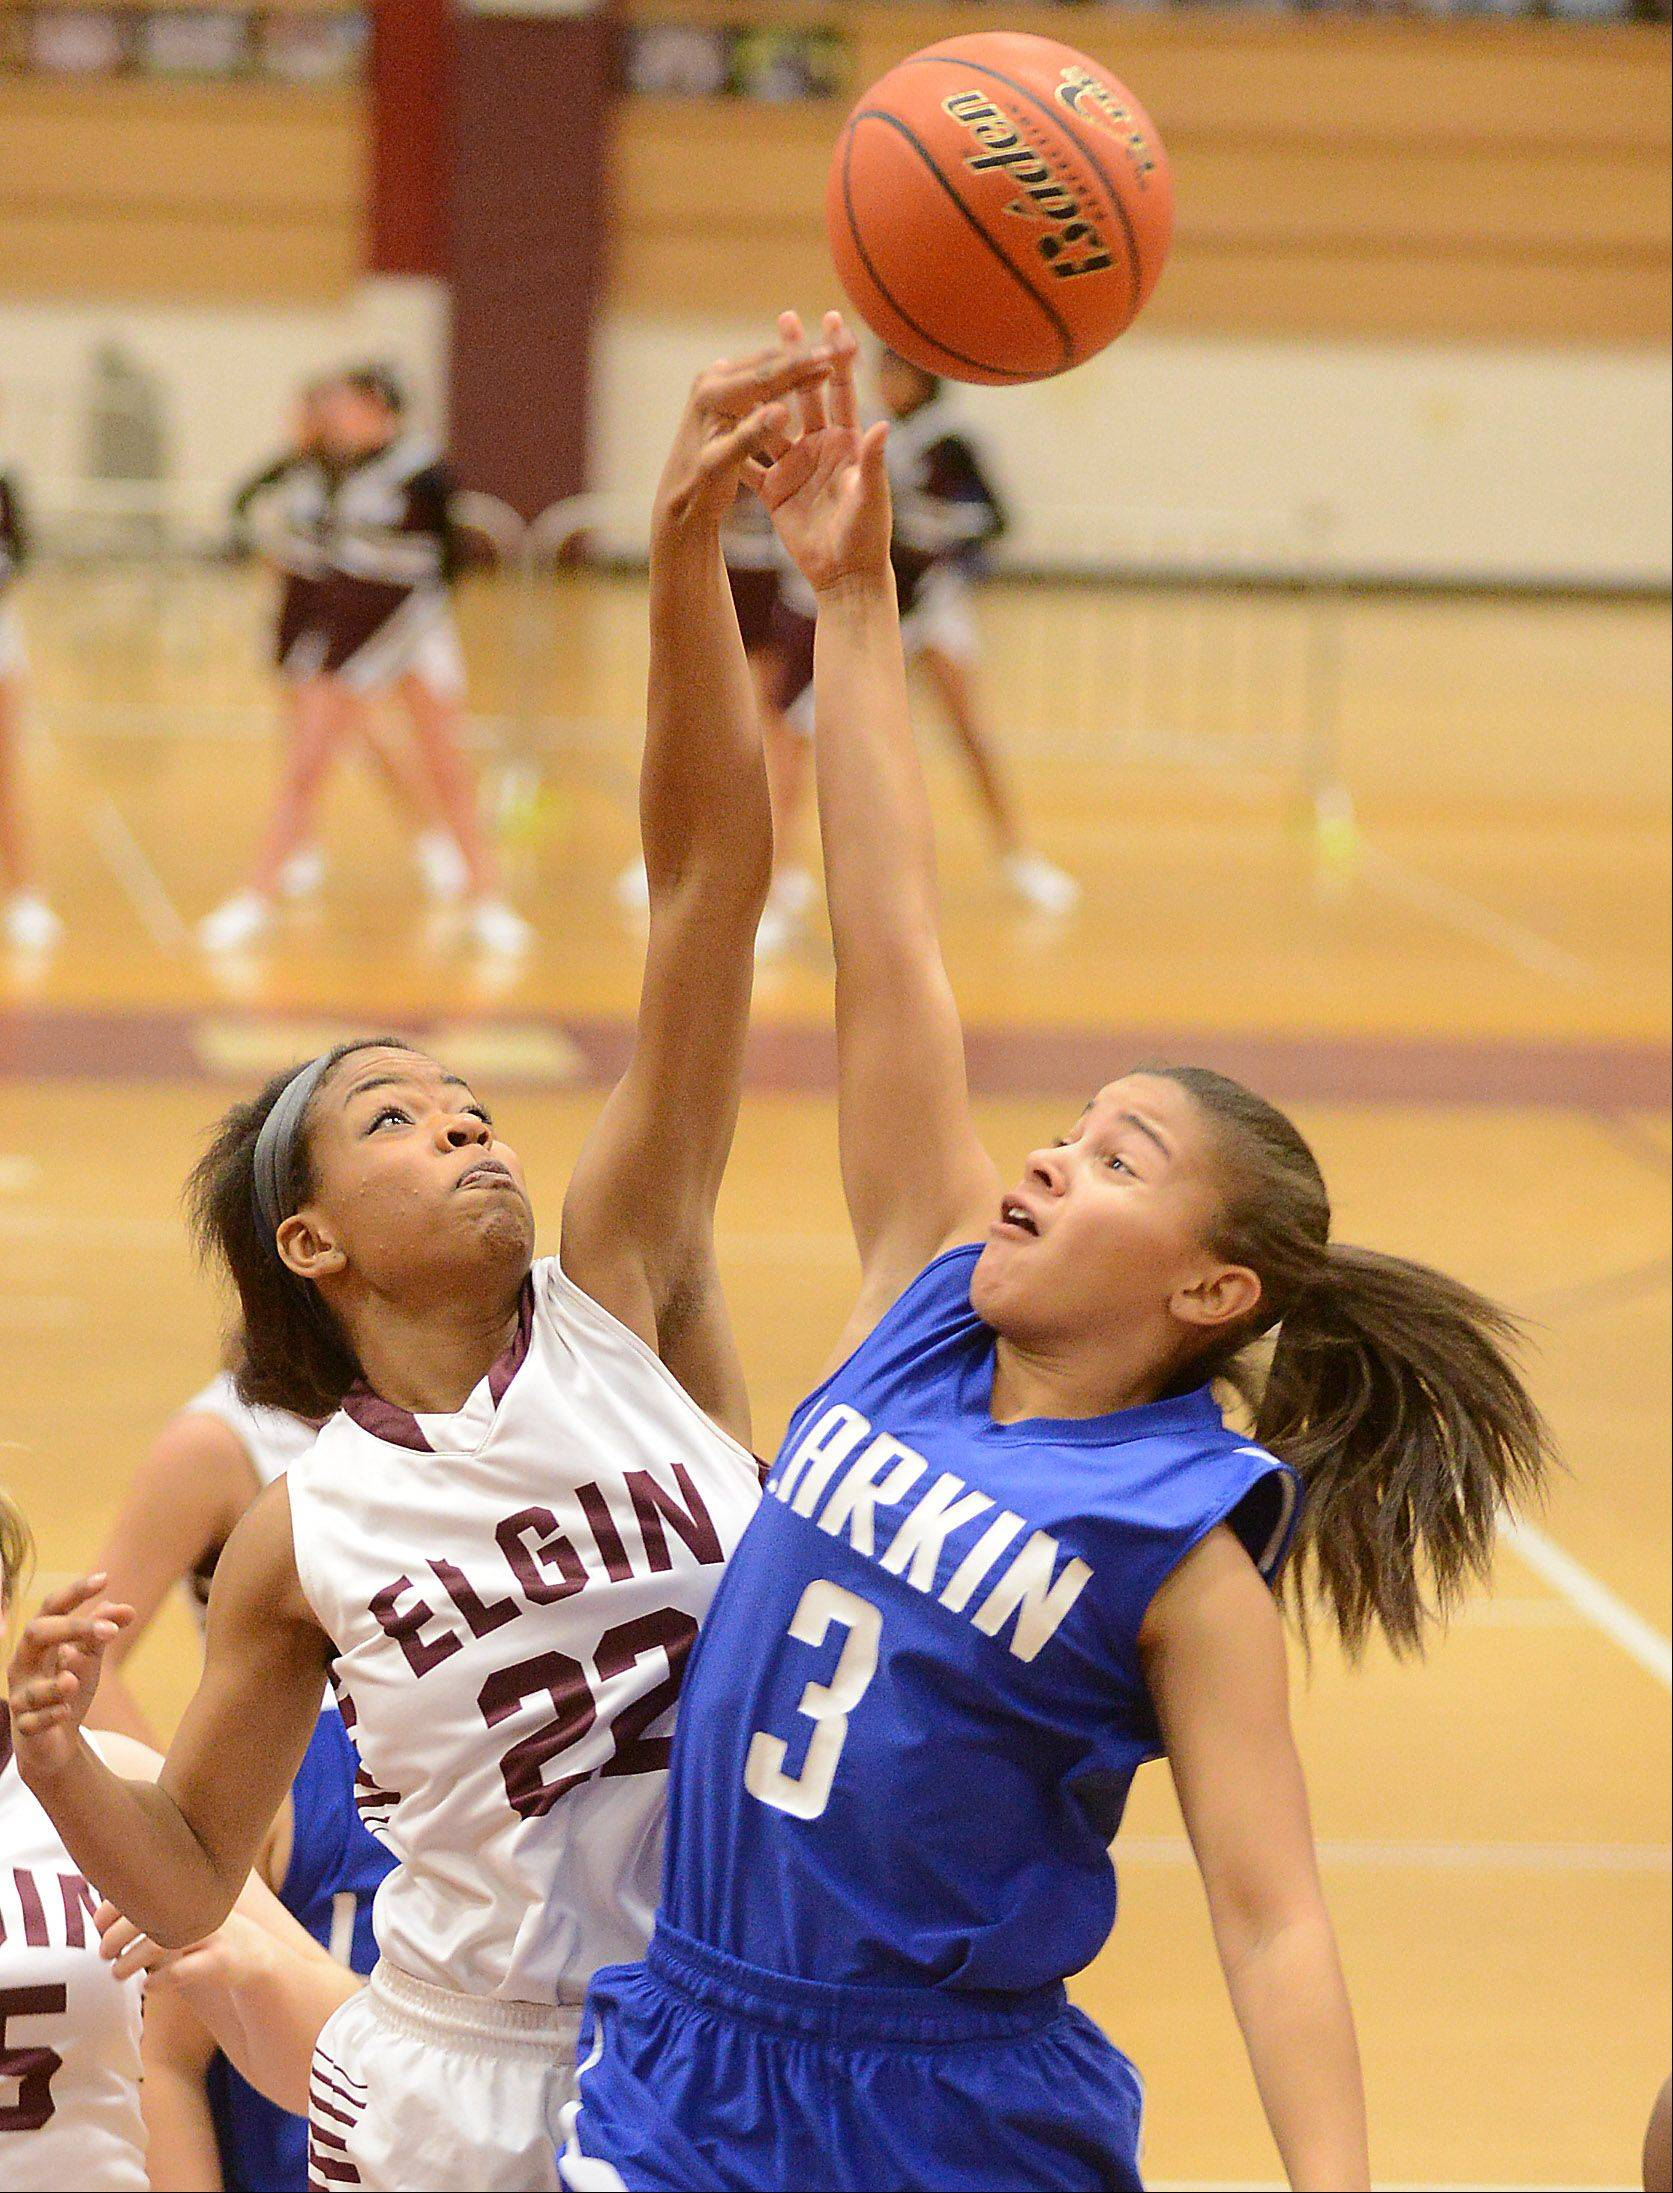 Elgin's Abby Pierre-Louis blocks a shot by Larkin's Marlee Kyles.